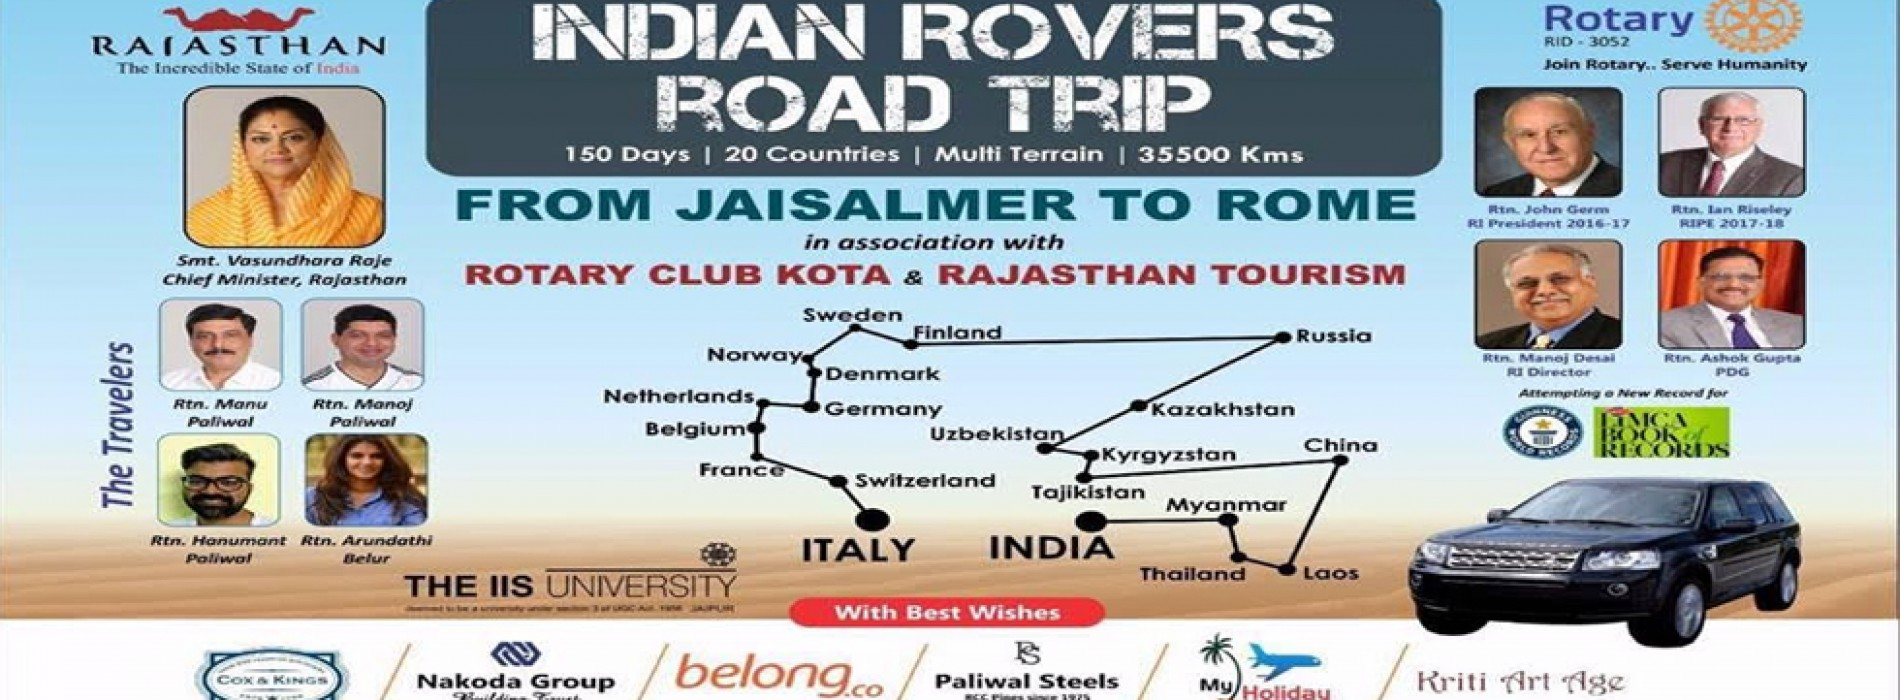 Come be a part of the multi terrain adventure with the Indian Rovers- A 33500 KM road trip of 150 days from India to Italy